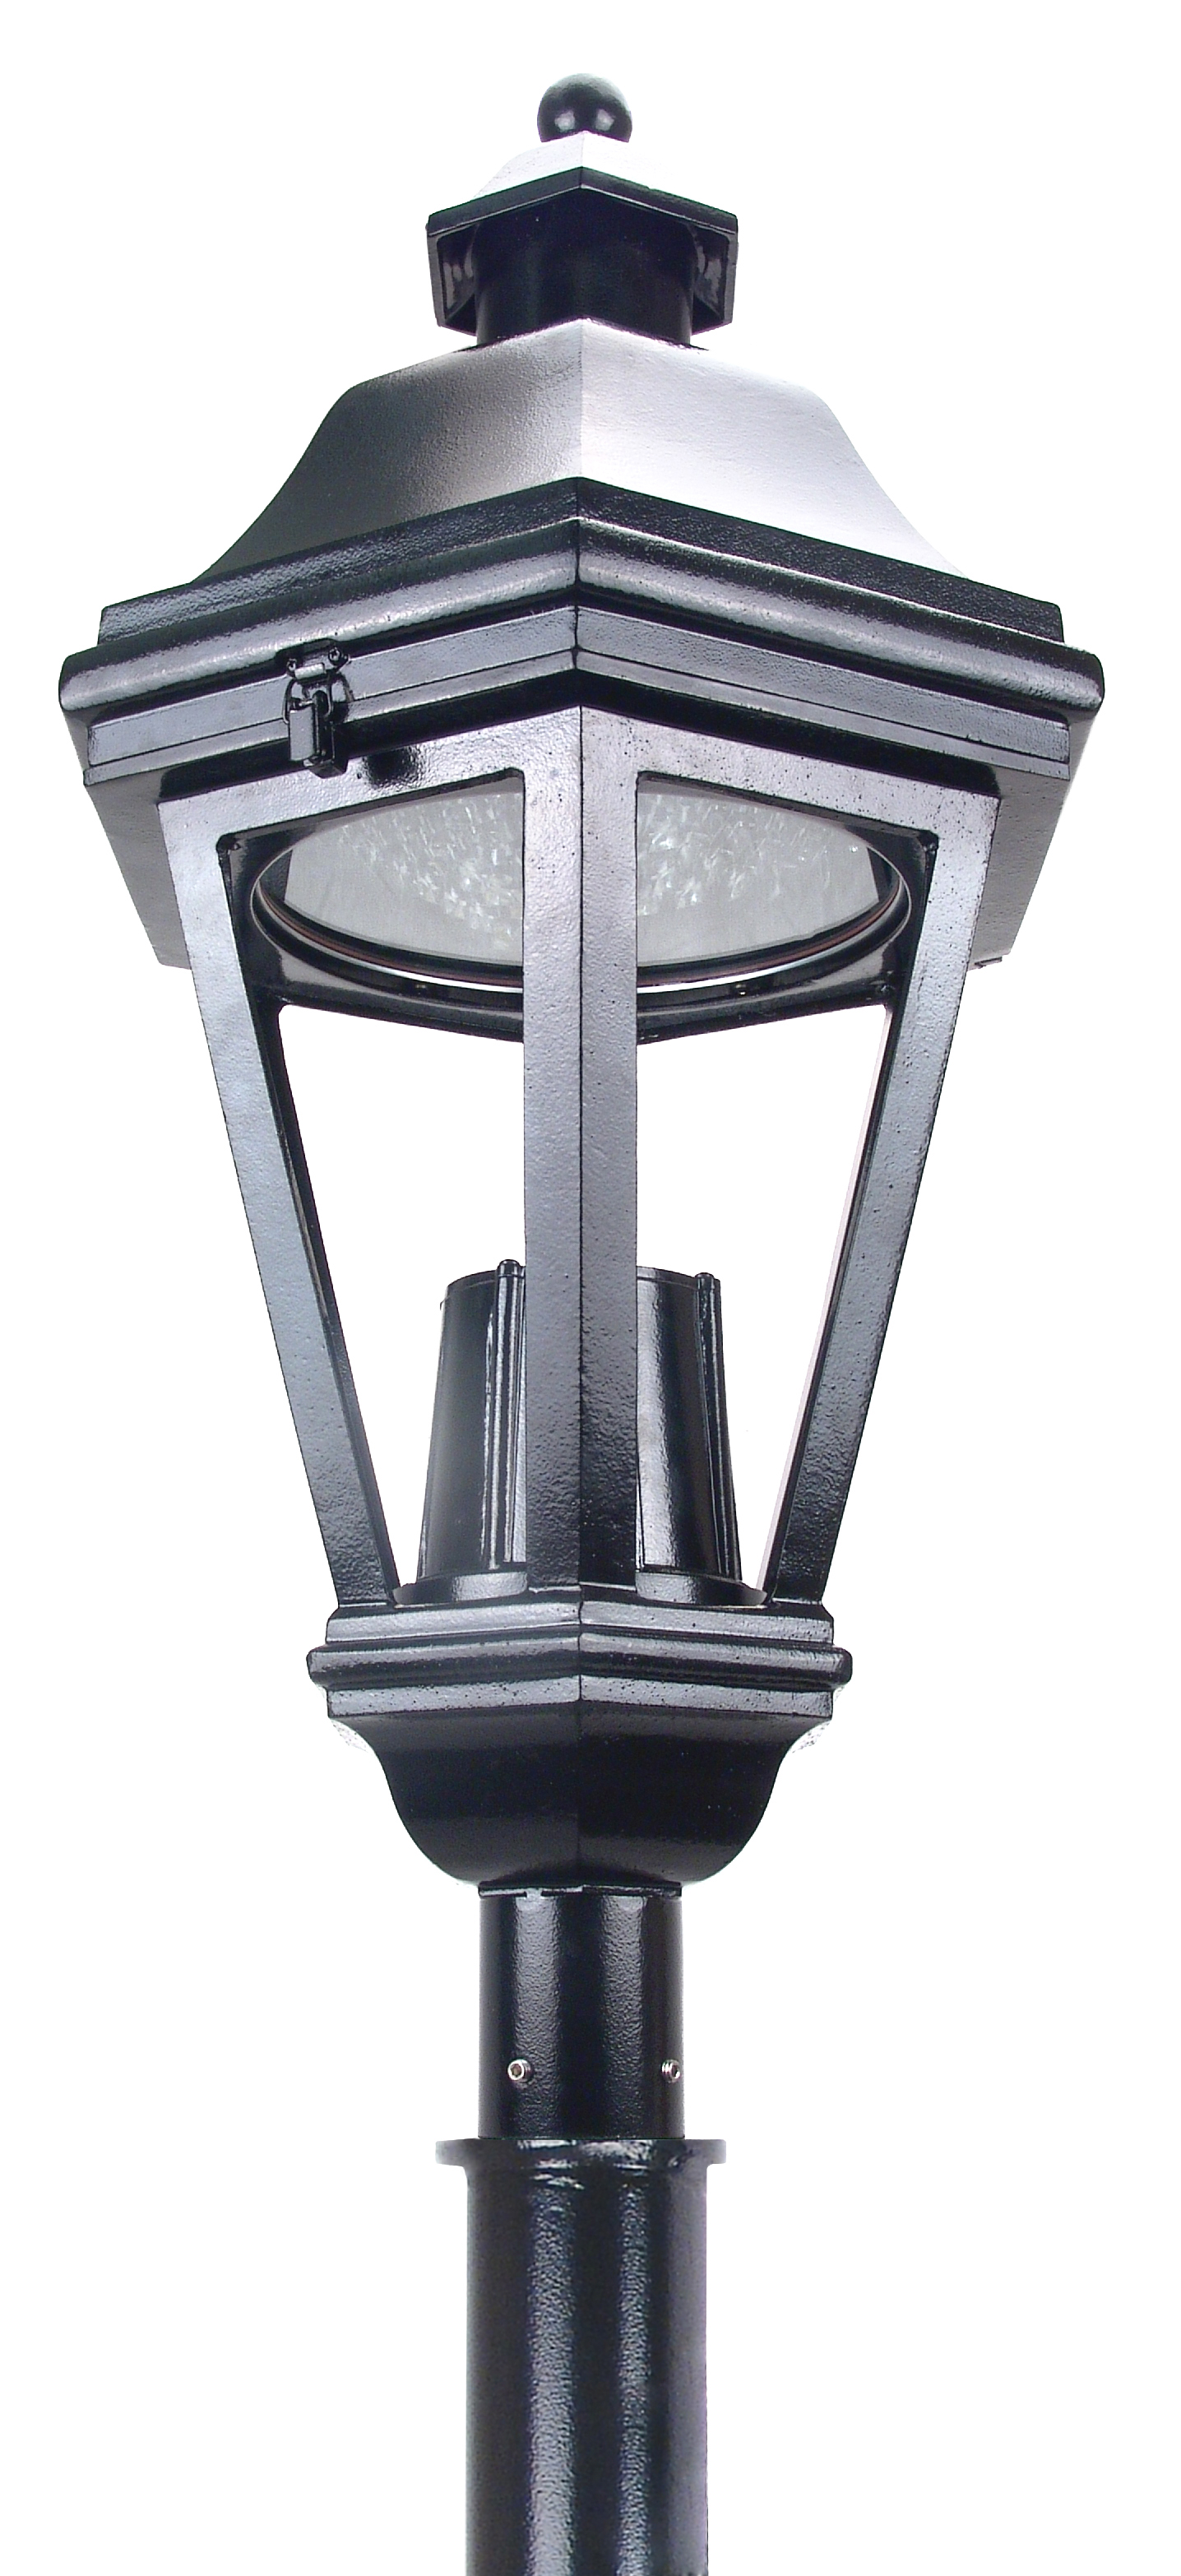 Energy Efficient Led Lighting In A